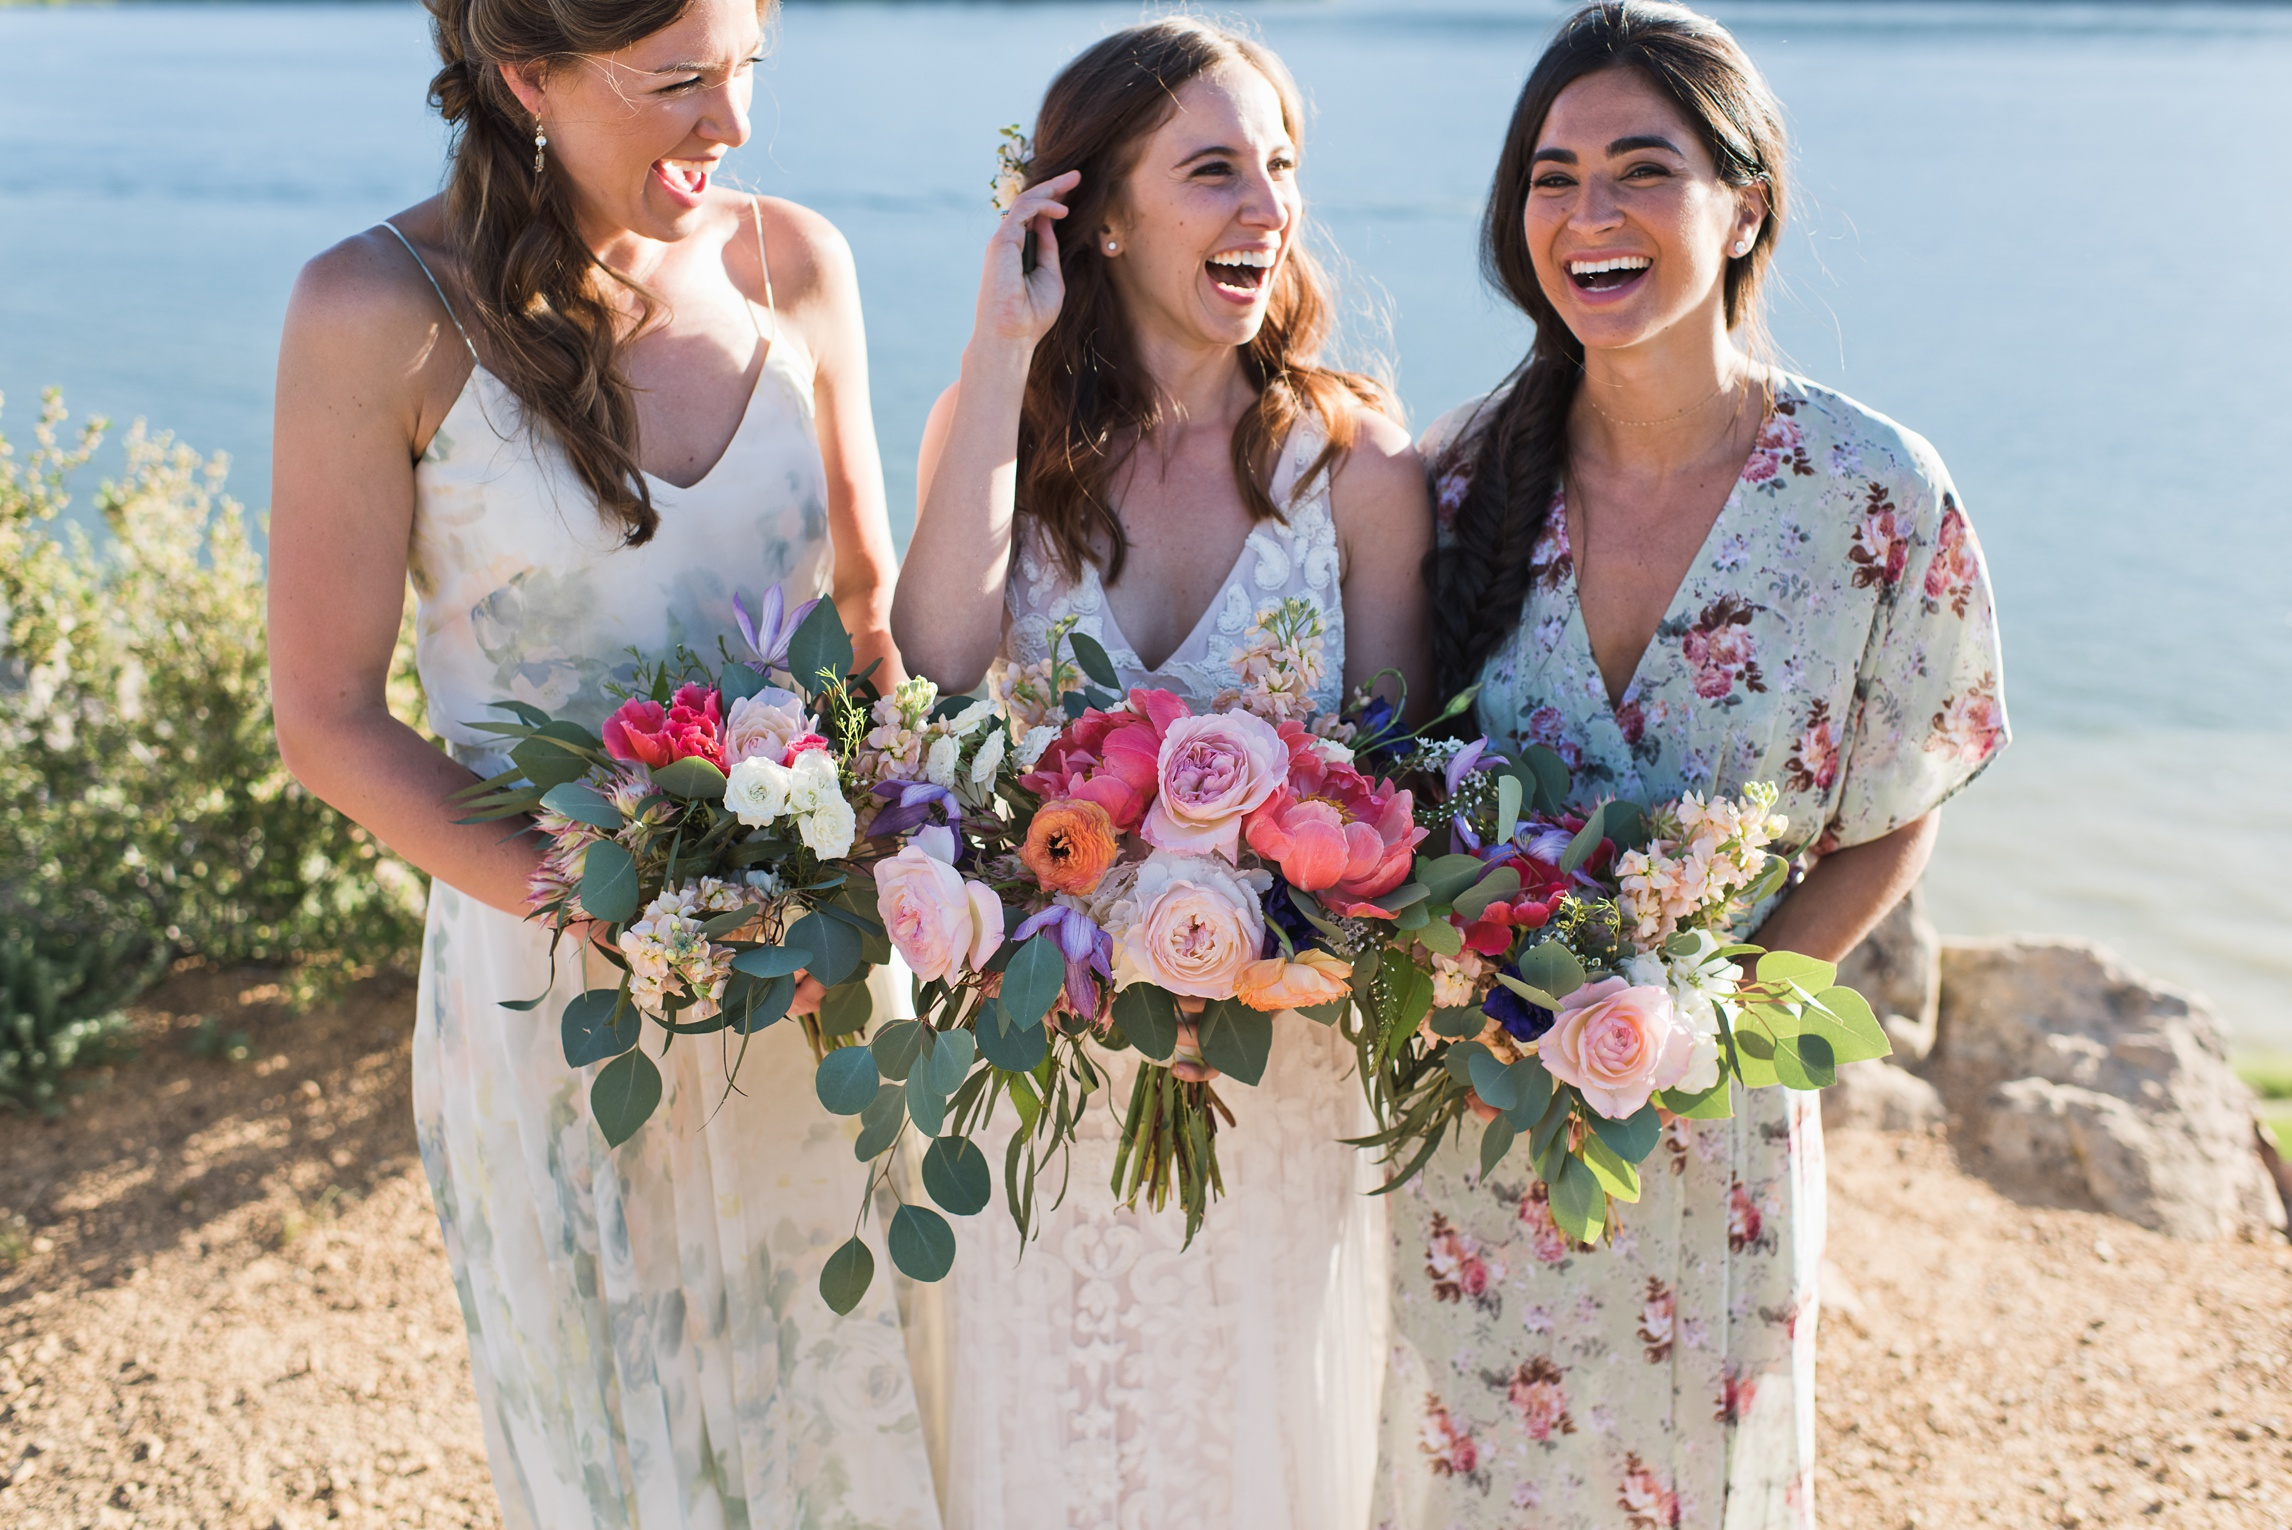 A bride and her bridesmaids at Horsetooth Reservoir in Fort Collins, Colorado. Wedding photography by Sonja Salzburg of Sonja K Photography.